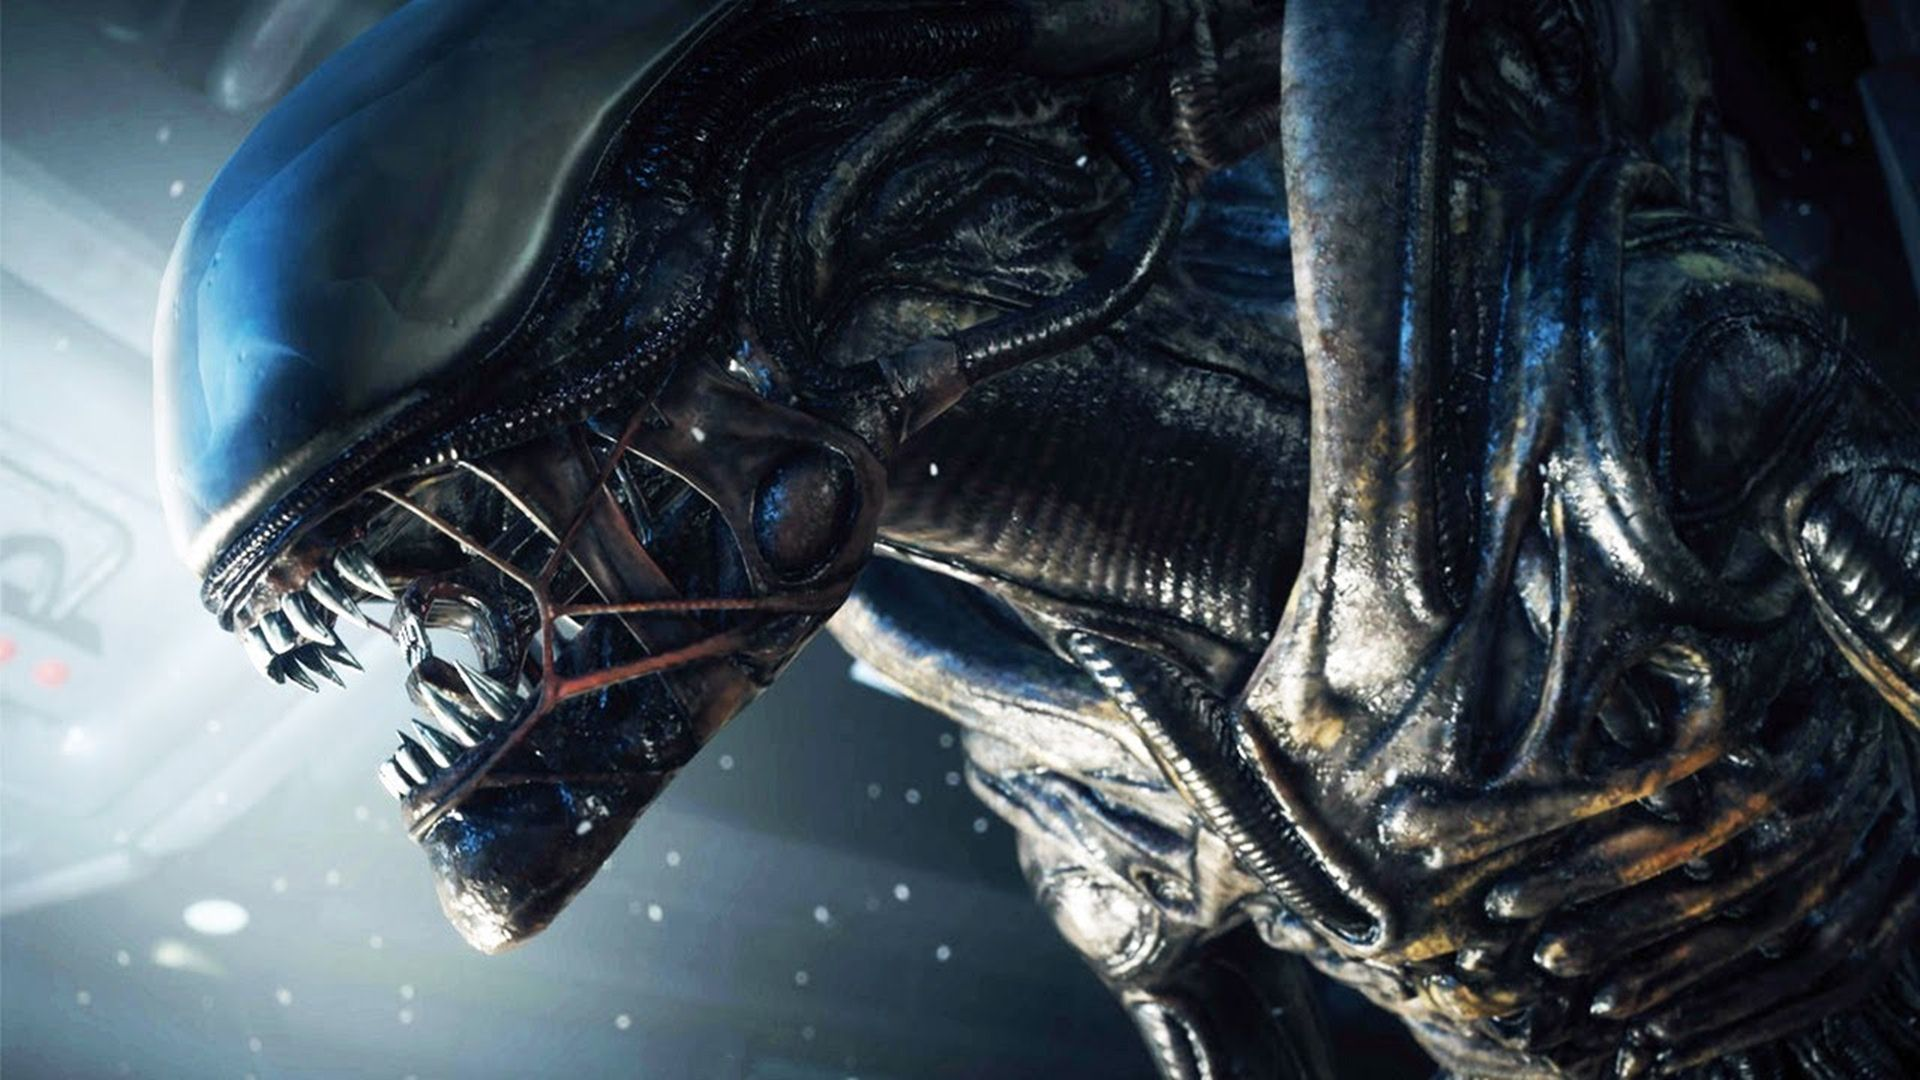 alien wallpaper hd free download 7